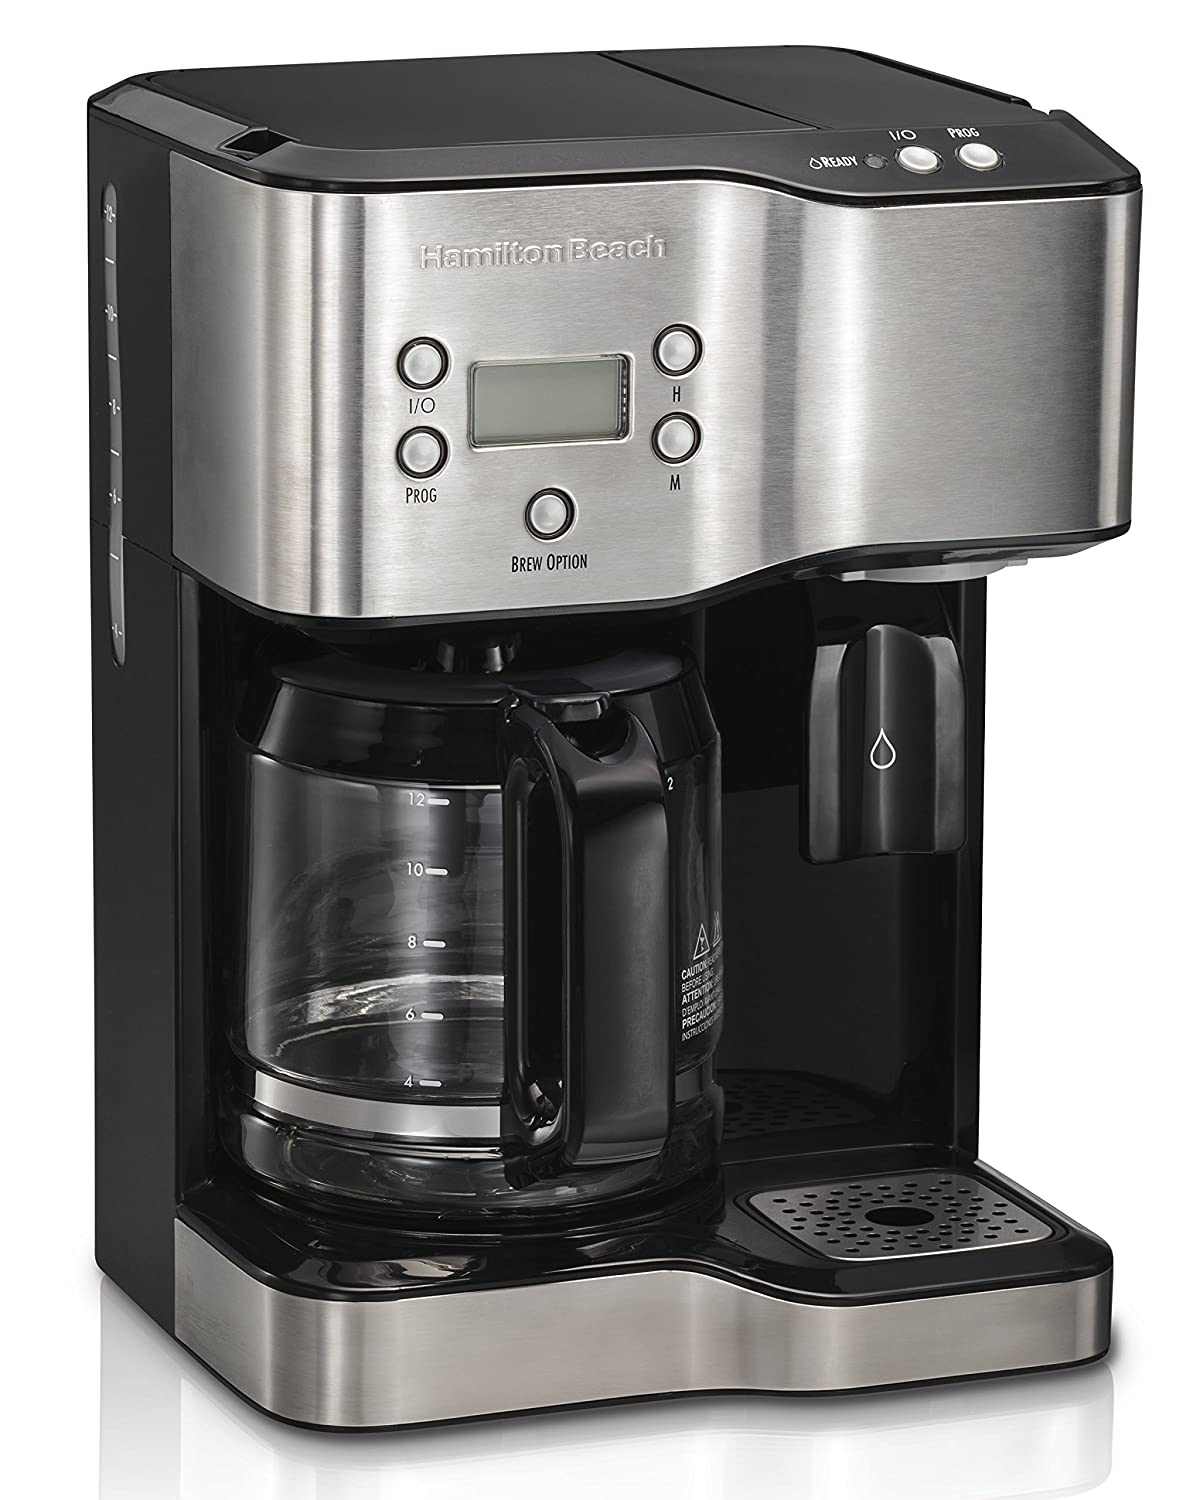 Top Coffee Makers with Hot Water Dispenser Functions > Gamble Bay Coffee Company